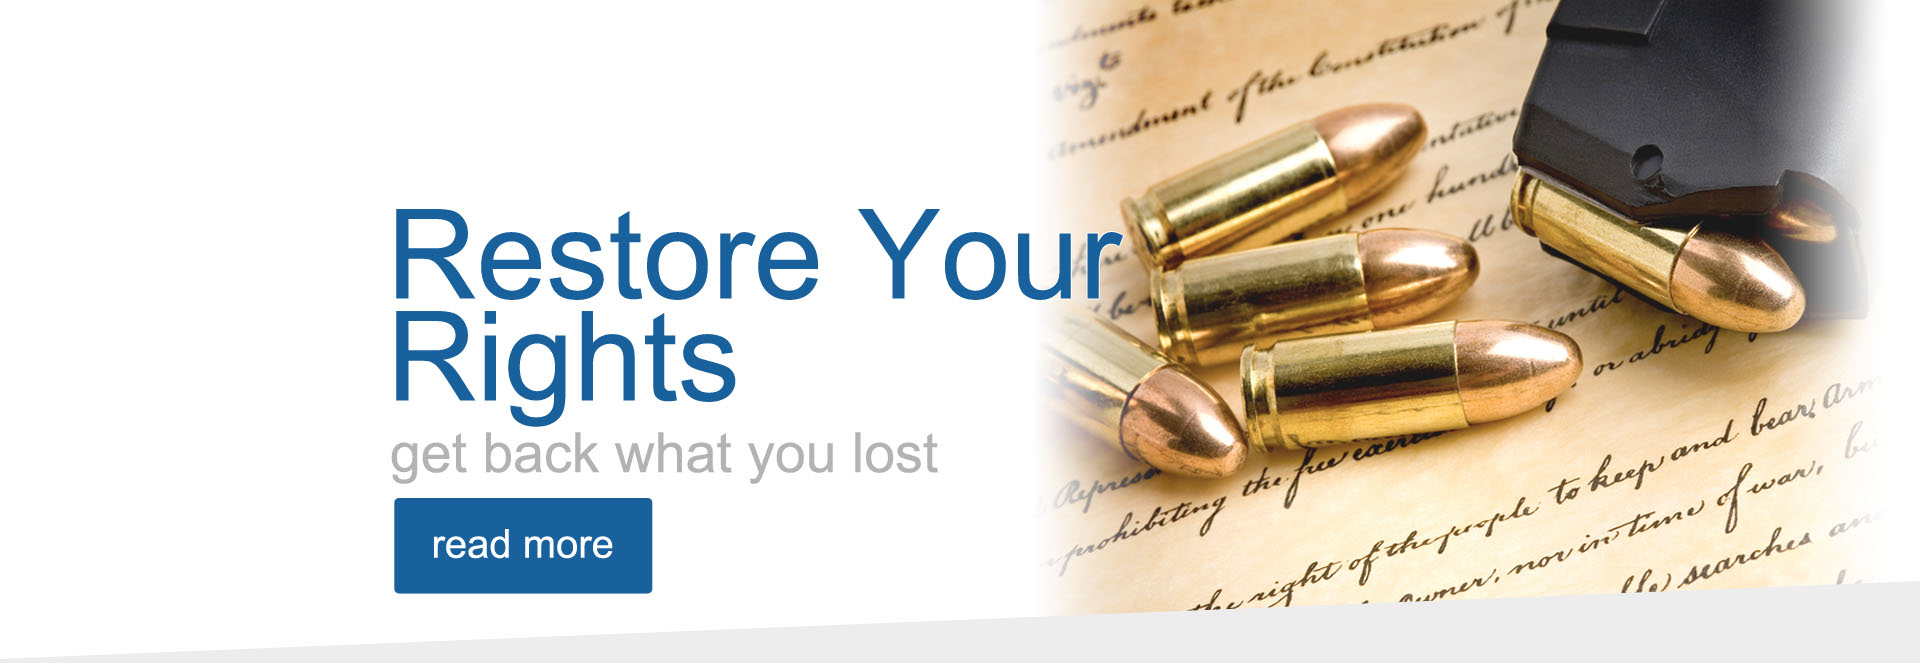 restore your gun rights